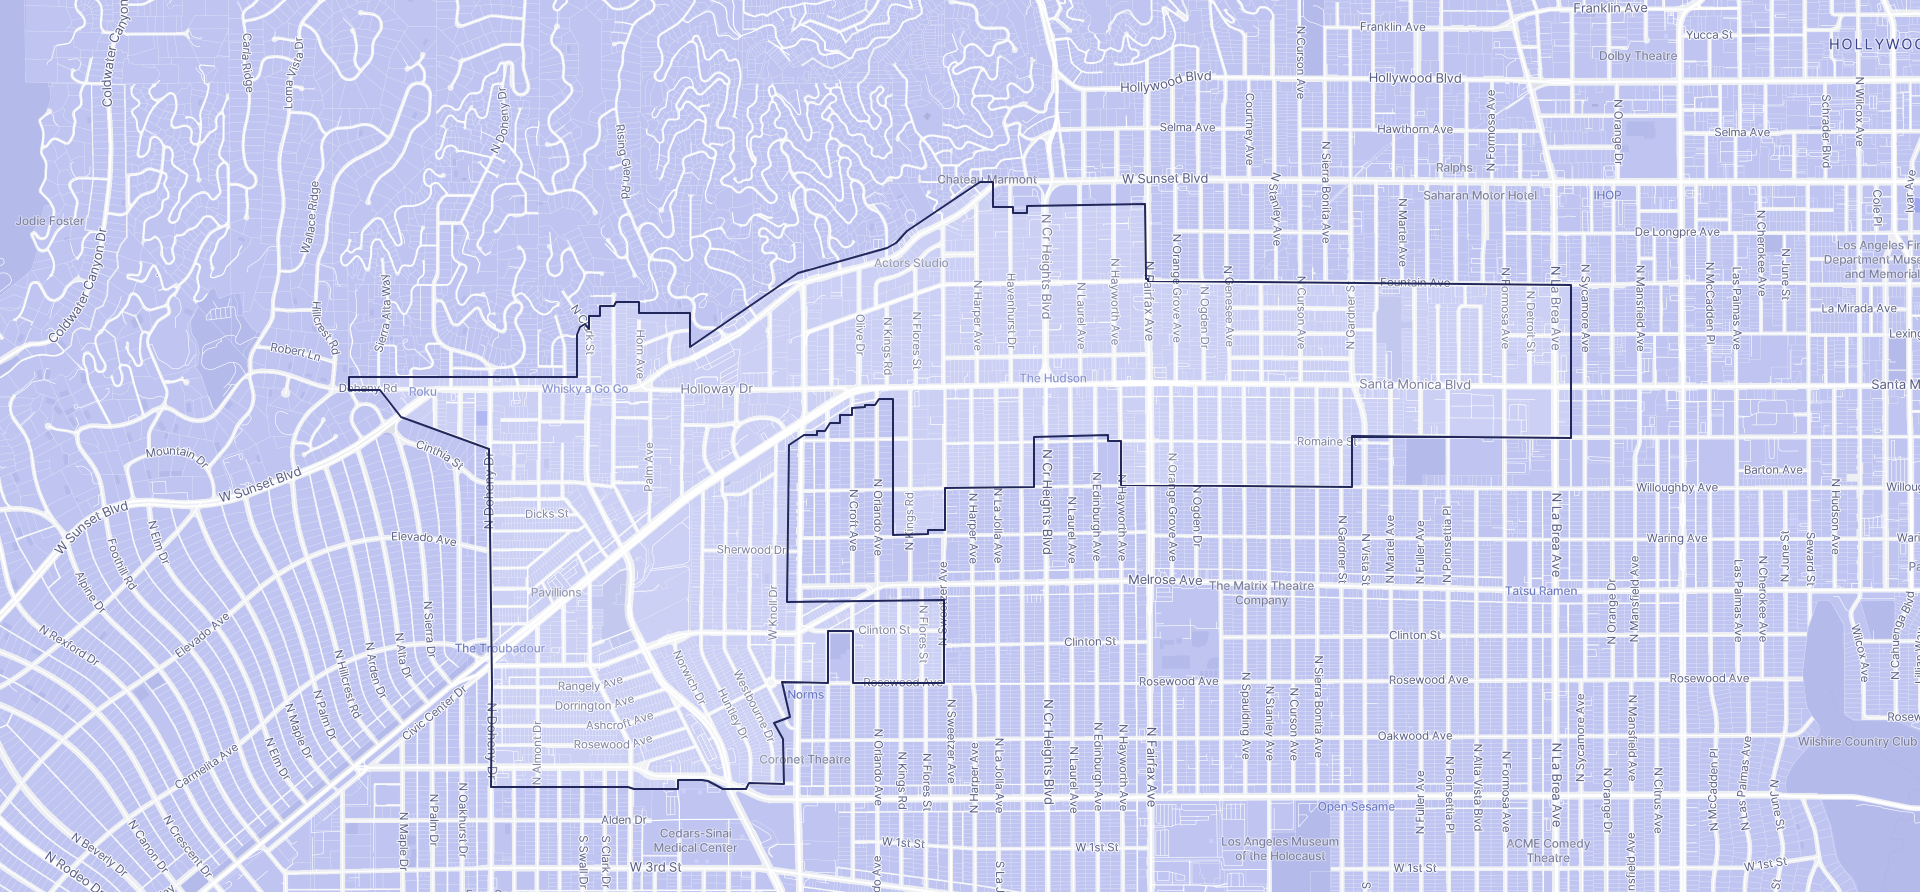 Image of West Hollywood boundaries on a map.